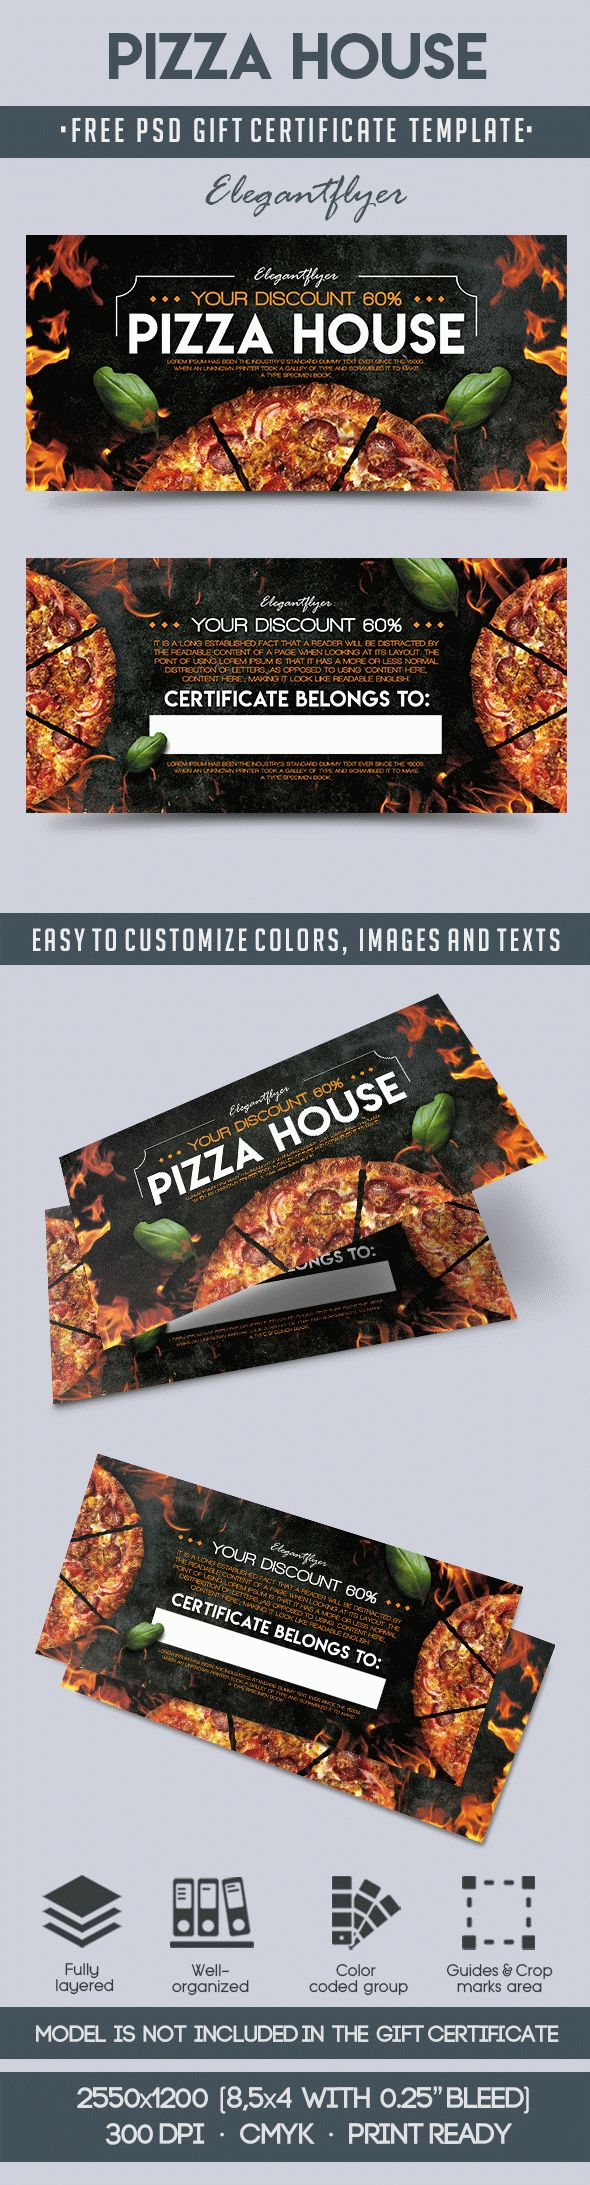 Pizza House – Free Gift Certificate PSD Template